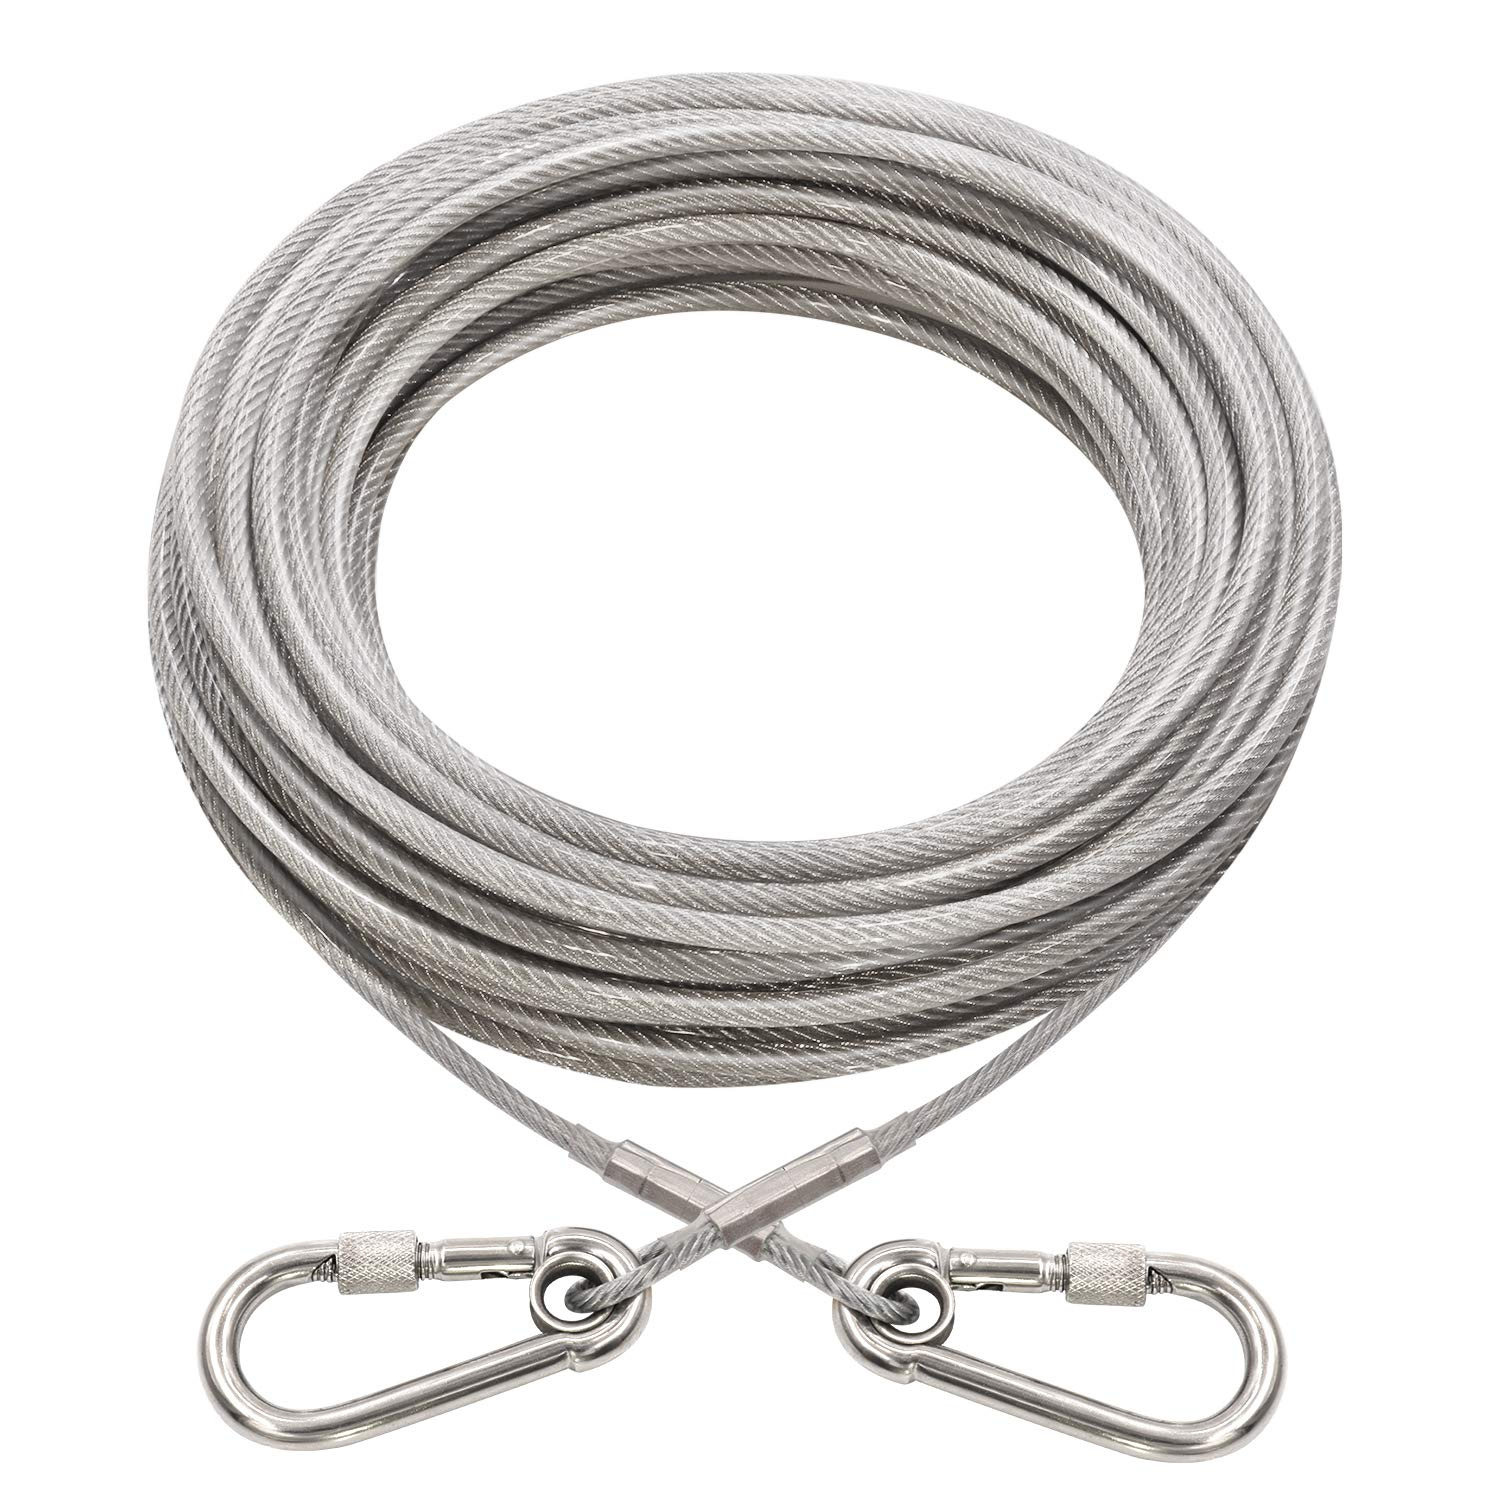 XiaZ Dog Runner Tie Out Cable for Dogs Up to 60/250 Pound, 10ft 20ft 30ft 40ft 50ft 70ft 100ft Dog Lead Line for Yard, Camping, Park, Outside